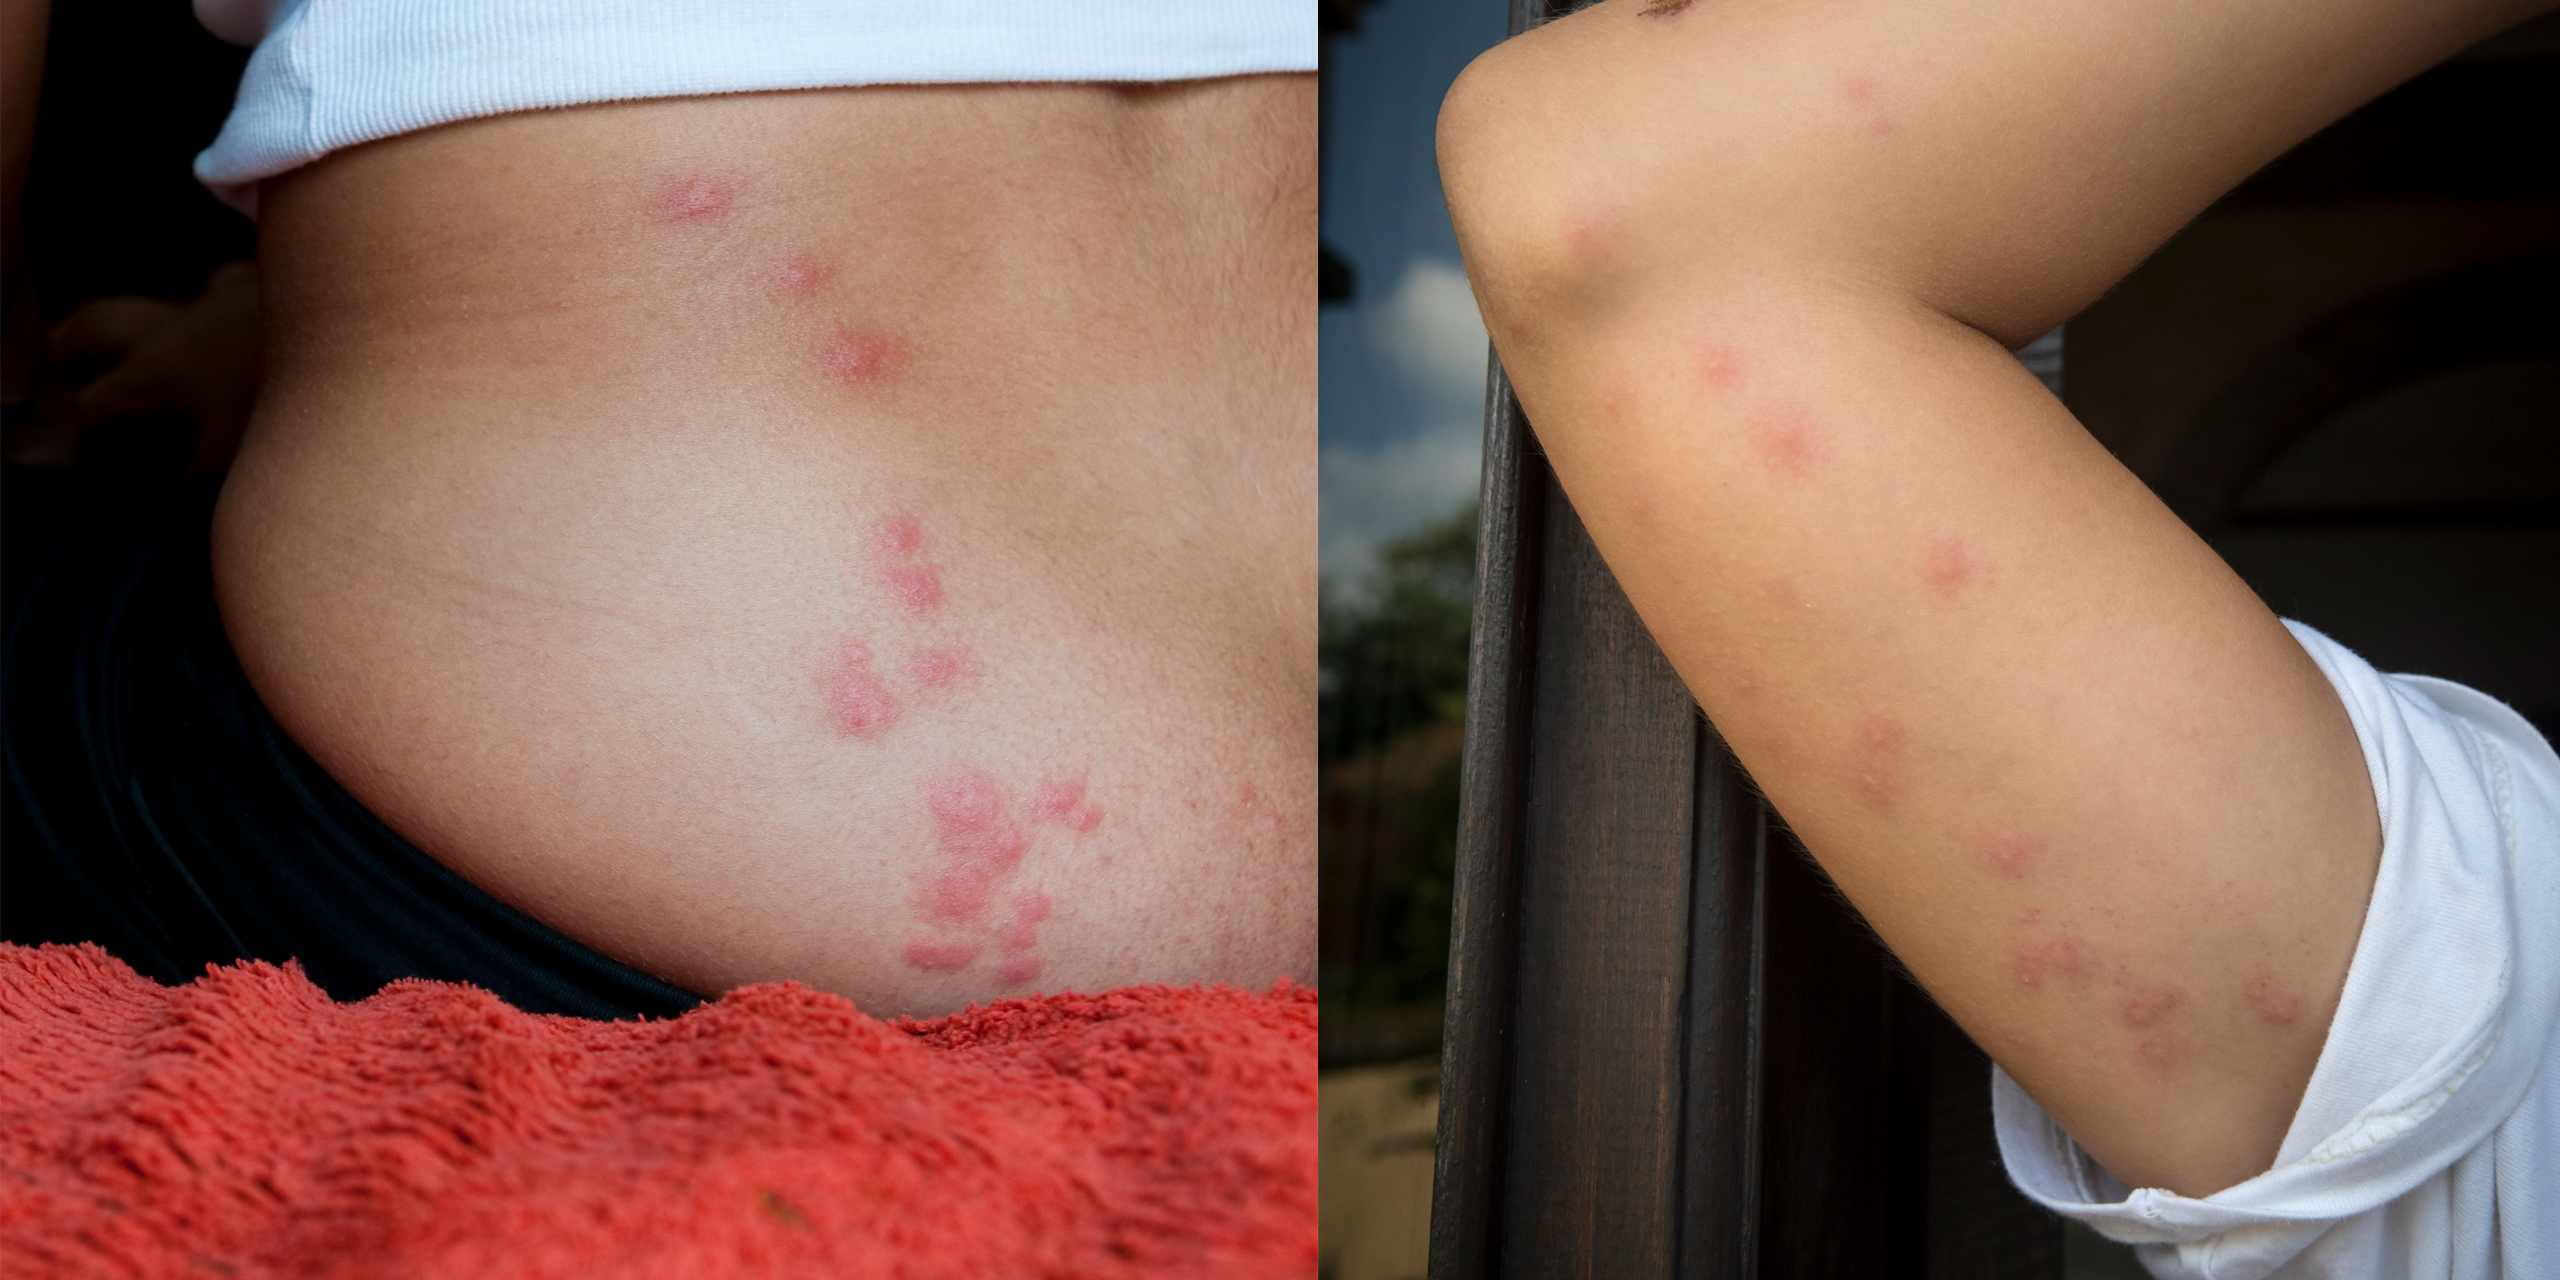 Bed Bug Bites Pictures Symptoms What Do Bed Bug Bites Look Like